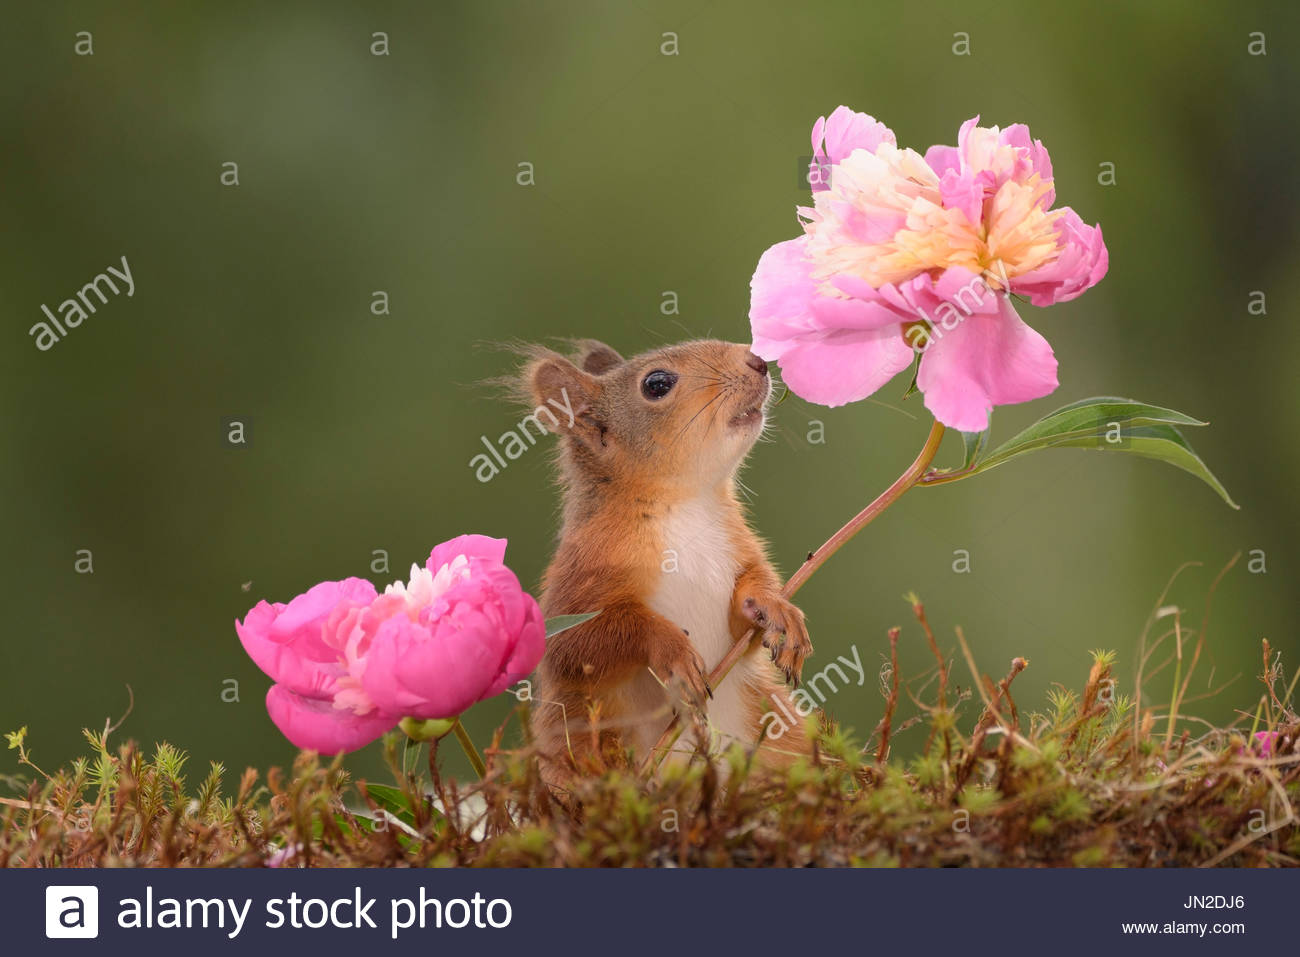 red squirrel  smelling  Peony - Stock Image